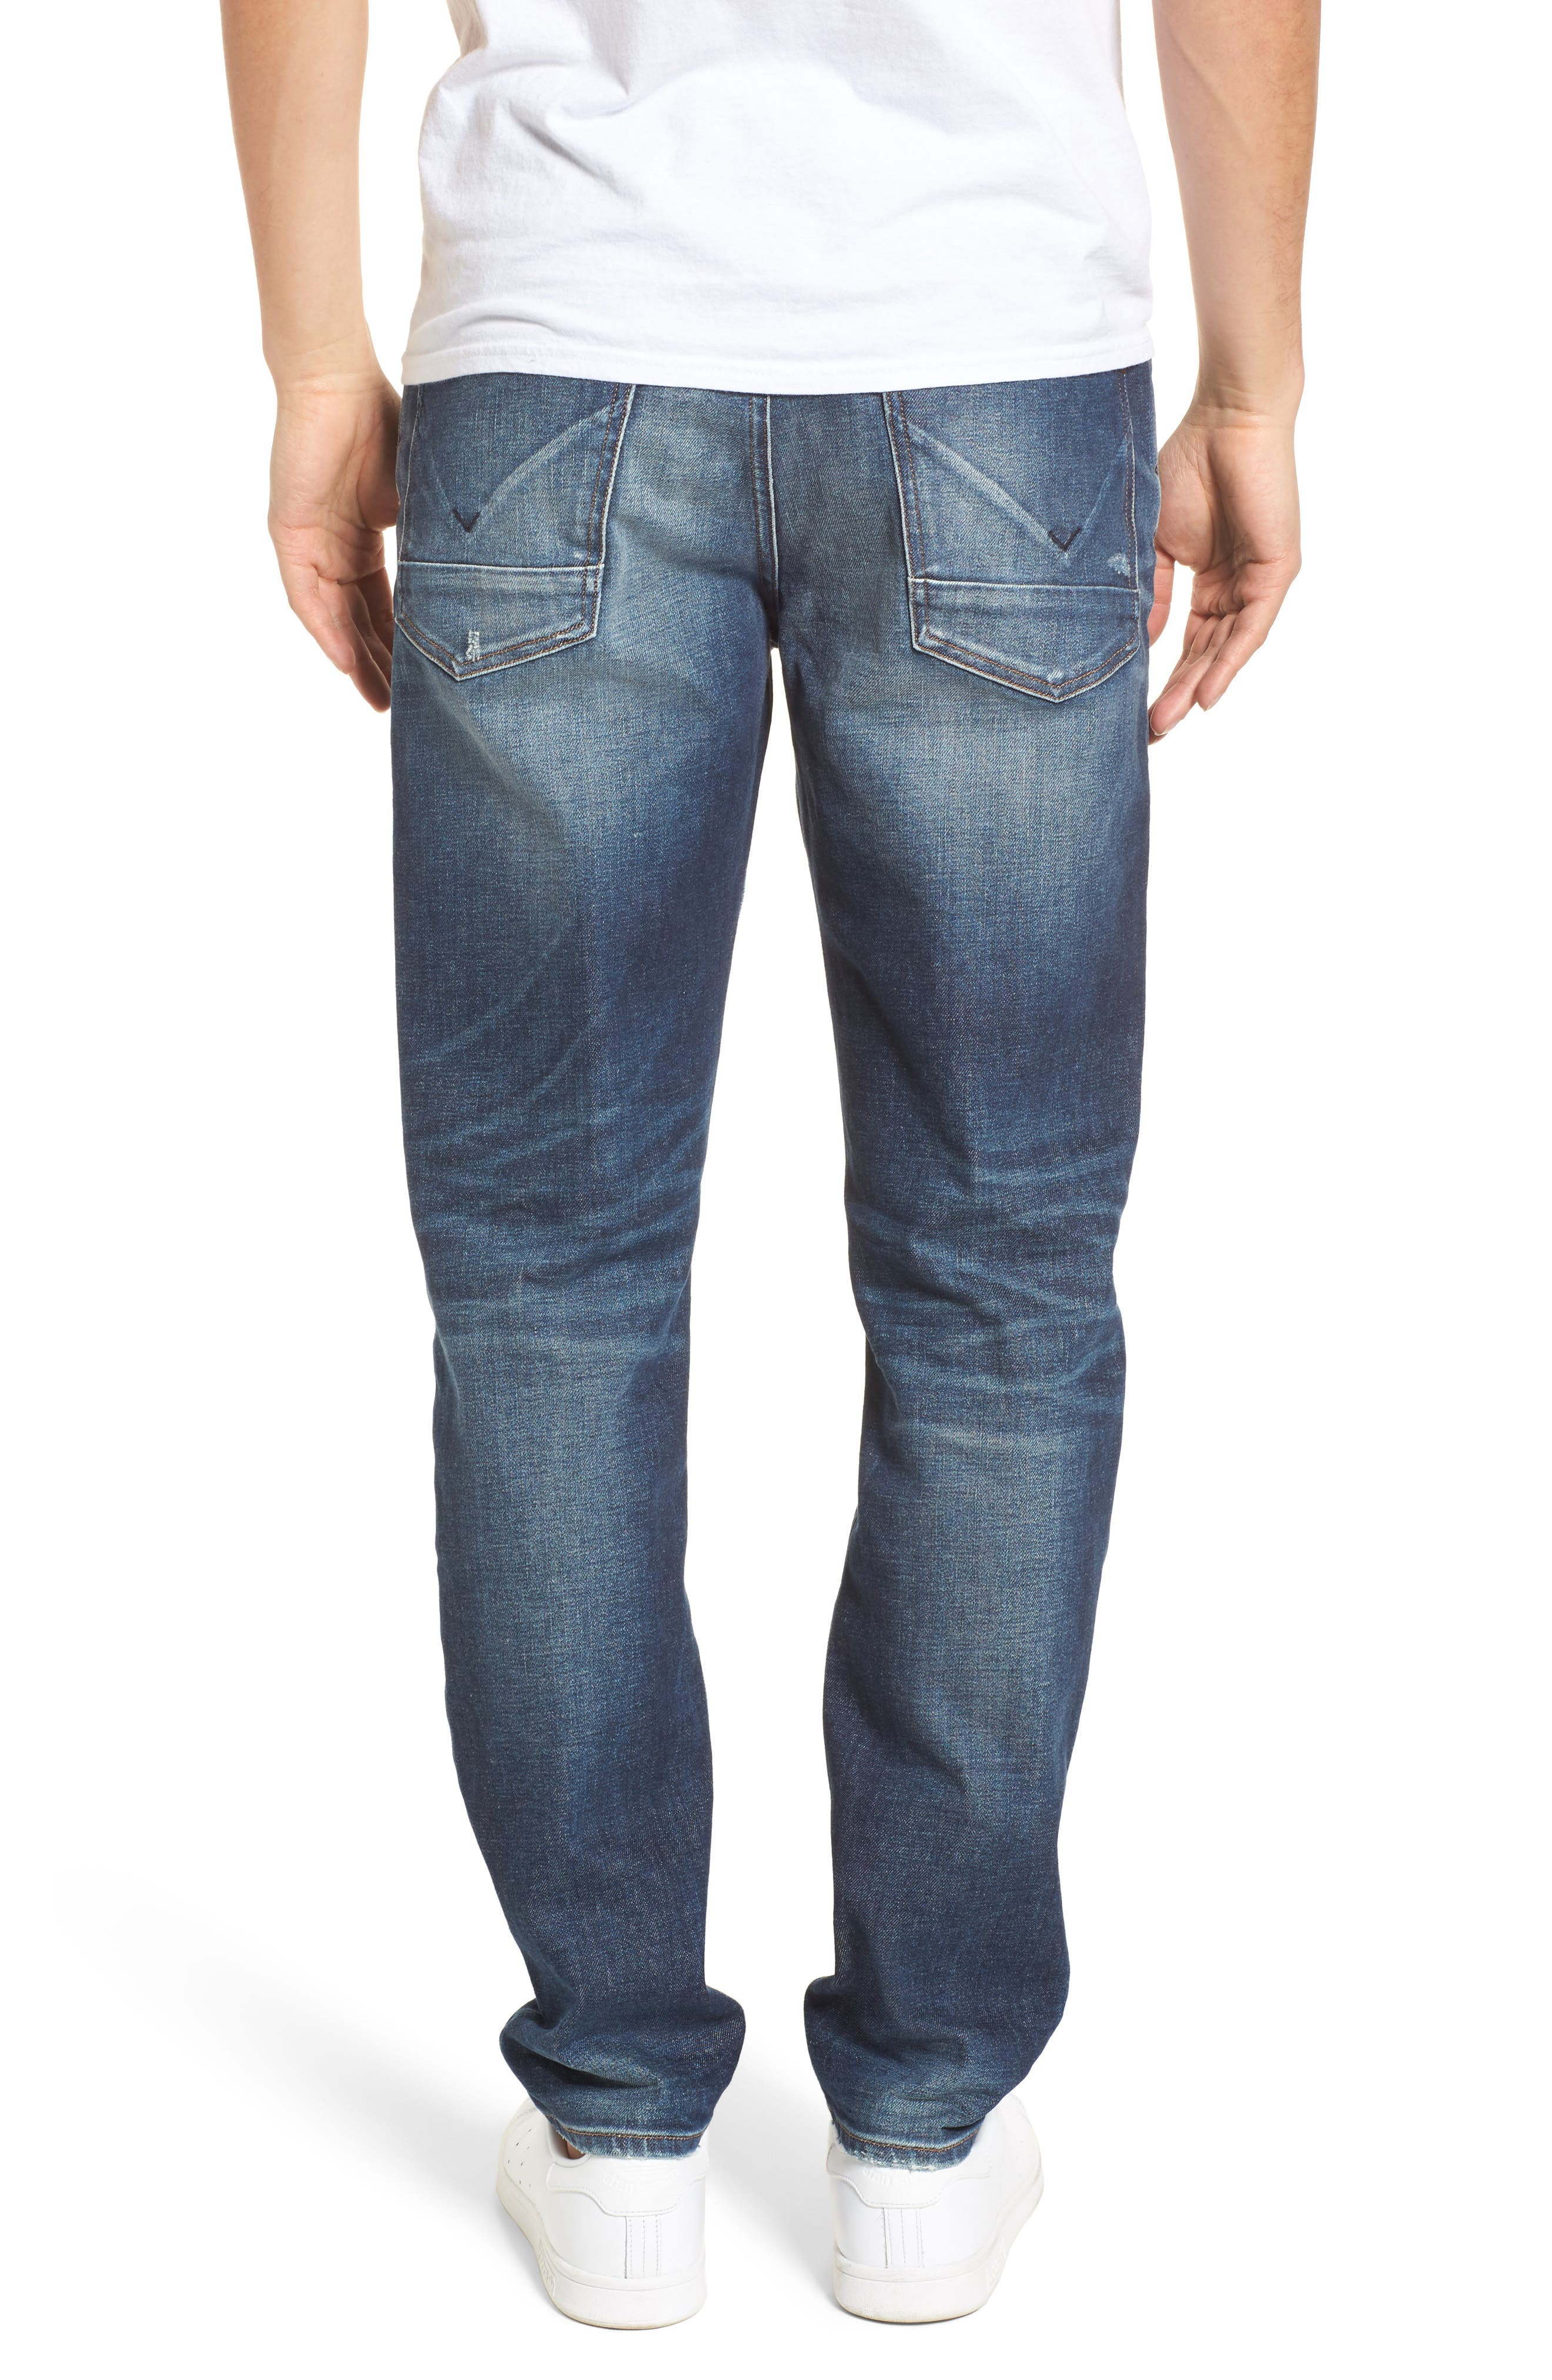 Sartor Slouchy Skinny Fit Jeans,                             Alternate thumbnail 2, color,                             All City